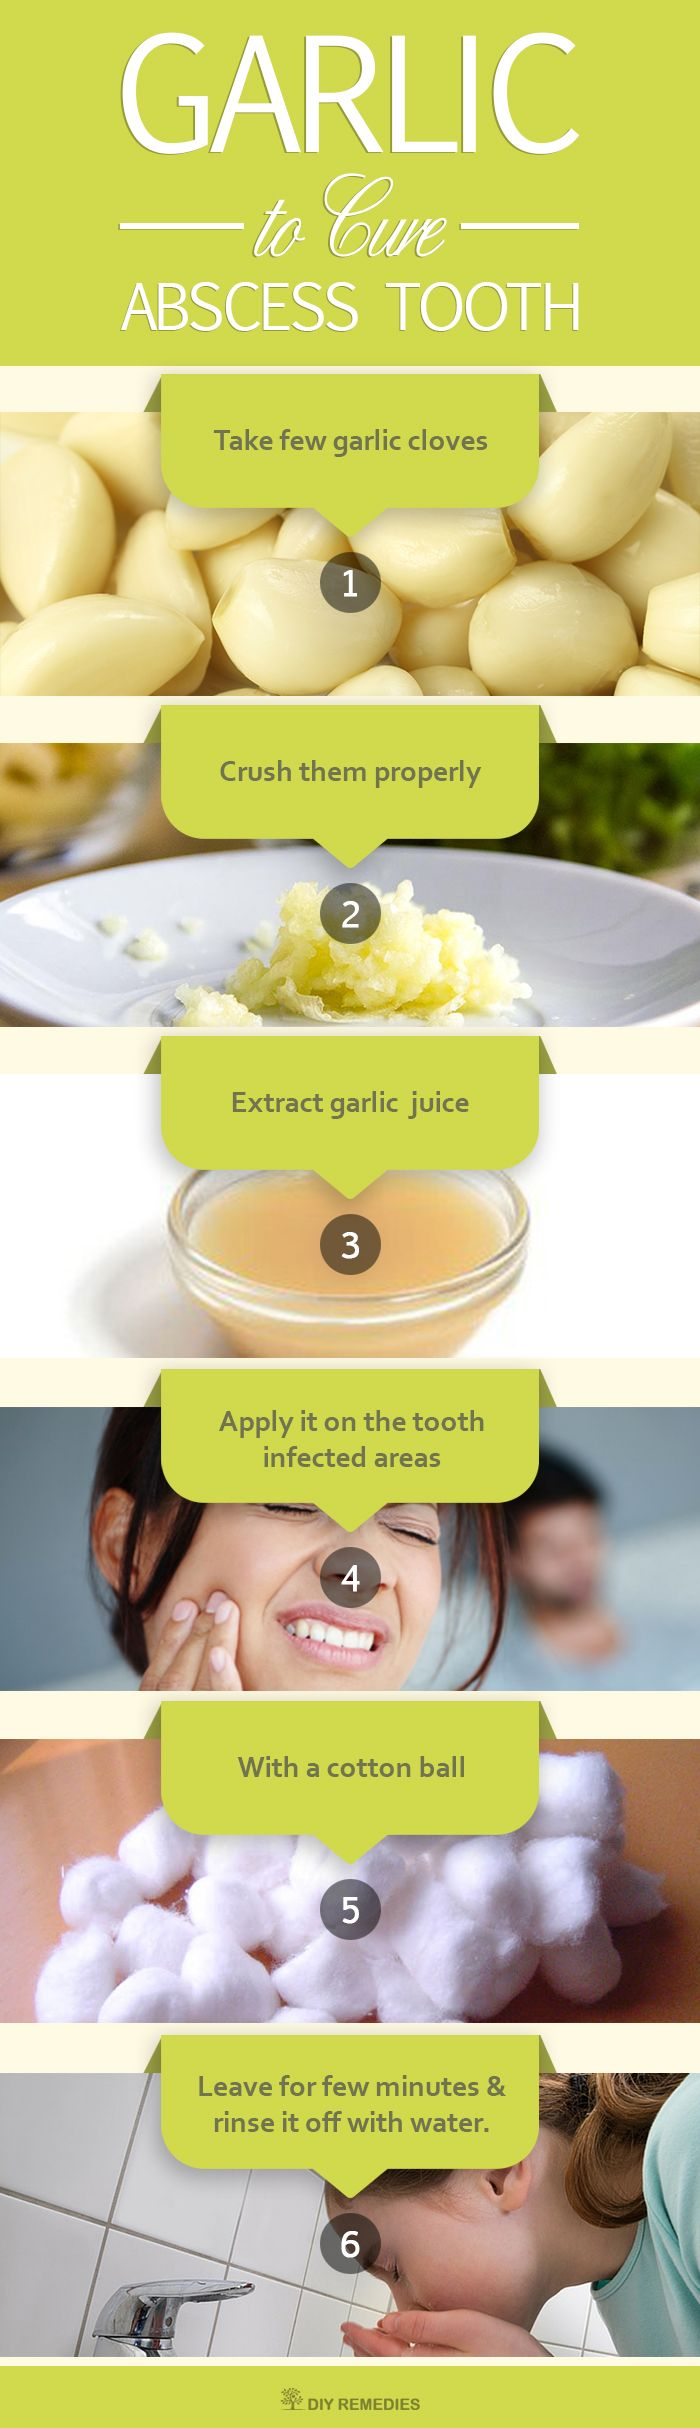 effectiveness of garlic in fighting bacteria Garlic proven 100 times more effective than antibiotics a significant finding from washington state university shows that garlic is 100 times more effective than two popular antibiotics at fighting disease causing bacteria commonly responsible for foodborne illness.